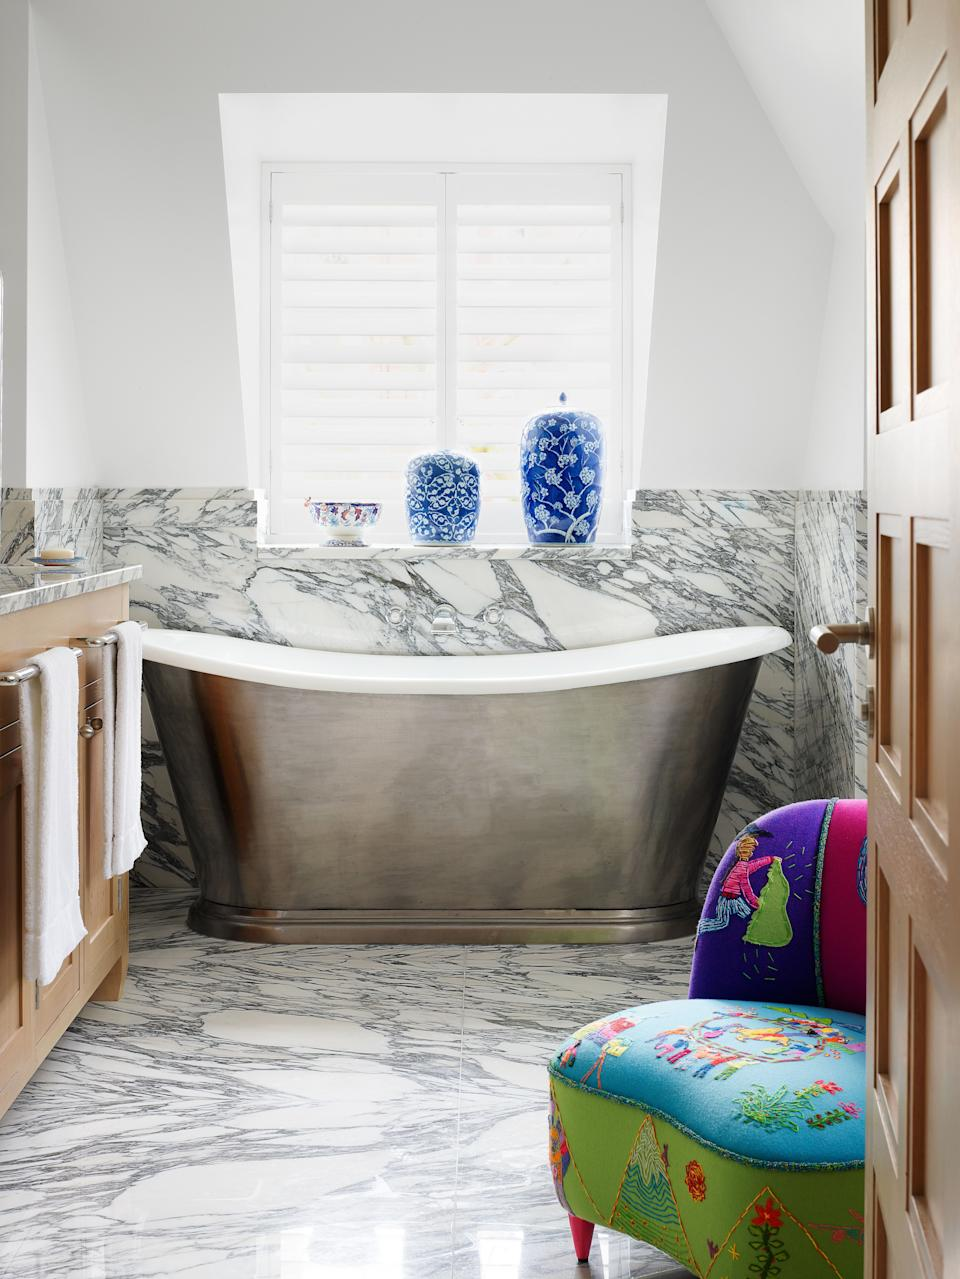 "<div class=""caption""> The master bath features a <a href=""https://www.cphart.co.uk/"" rel=""nofollow noopener"" target=""_blank"" data-ylk=""slk:C.P. Hart"" class=""link rapid-noclick-resp"">C.P. Hart</a> tub. Embroidered chair by Minnie. </div> <cite class=""credit"">Simon Upton </cite>"